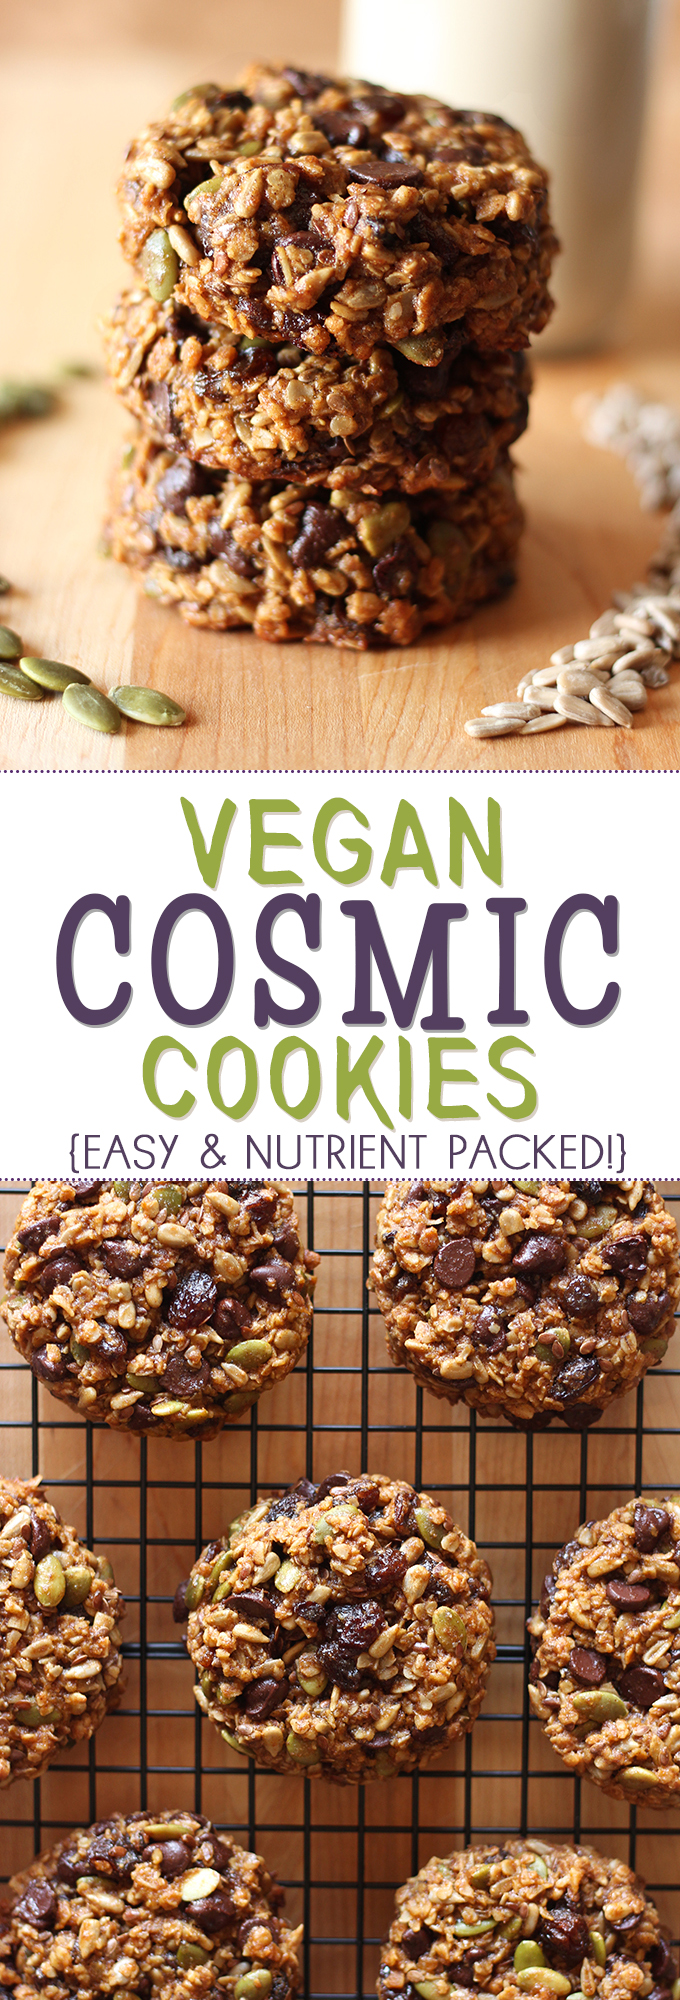 The powerhouse of all cookies = cosmic cookies! Packed full with tonnes of nutritious ingredients, these make the perfect any time snack!